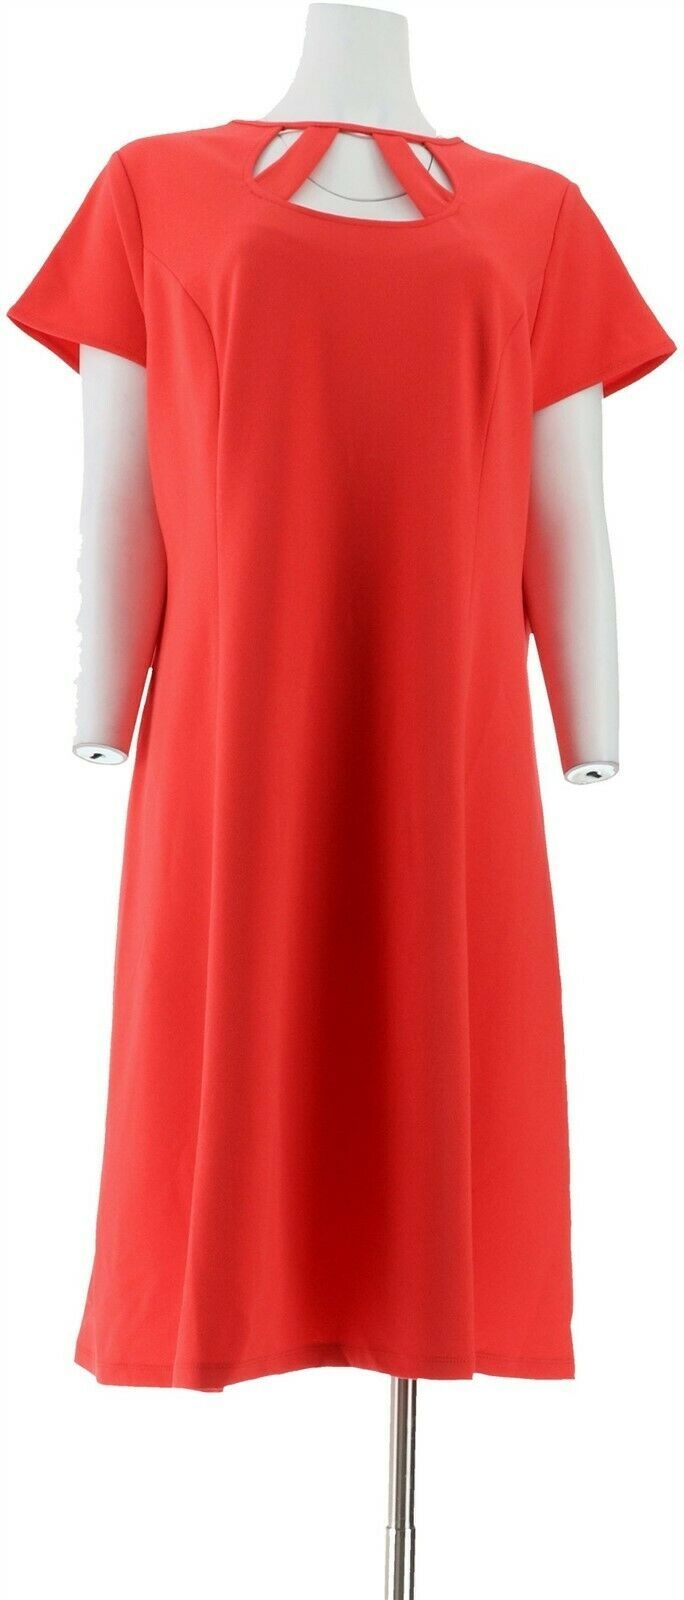 Primary image for Dennis Basso Luxe Crepe Dress Cut-Out Neck Back Zipper Coral Reef 6 NEW A307233